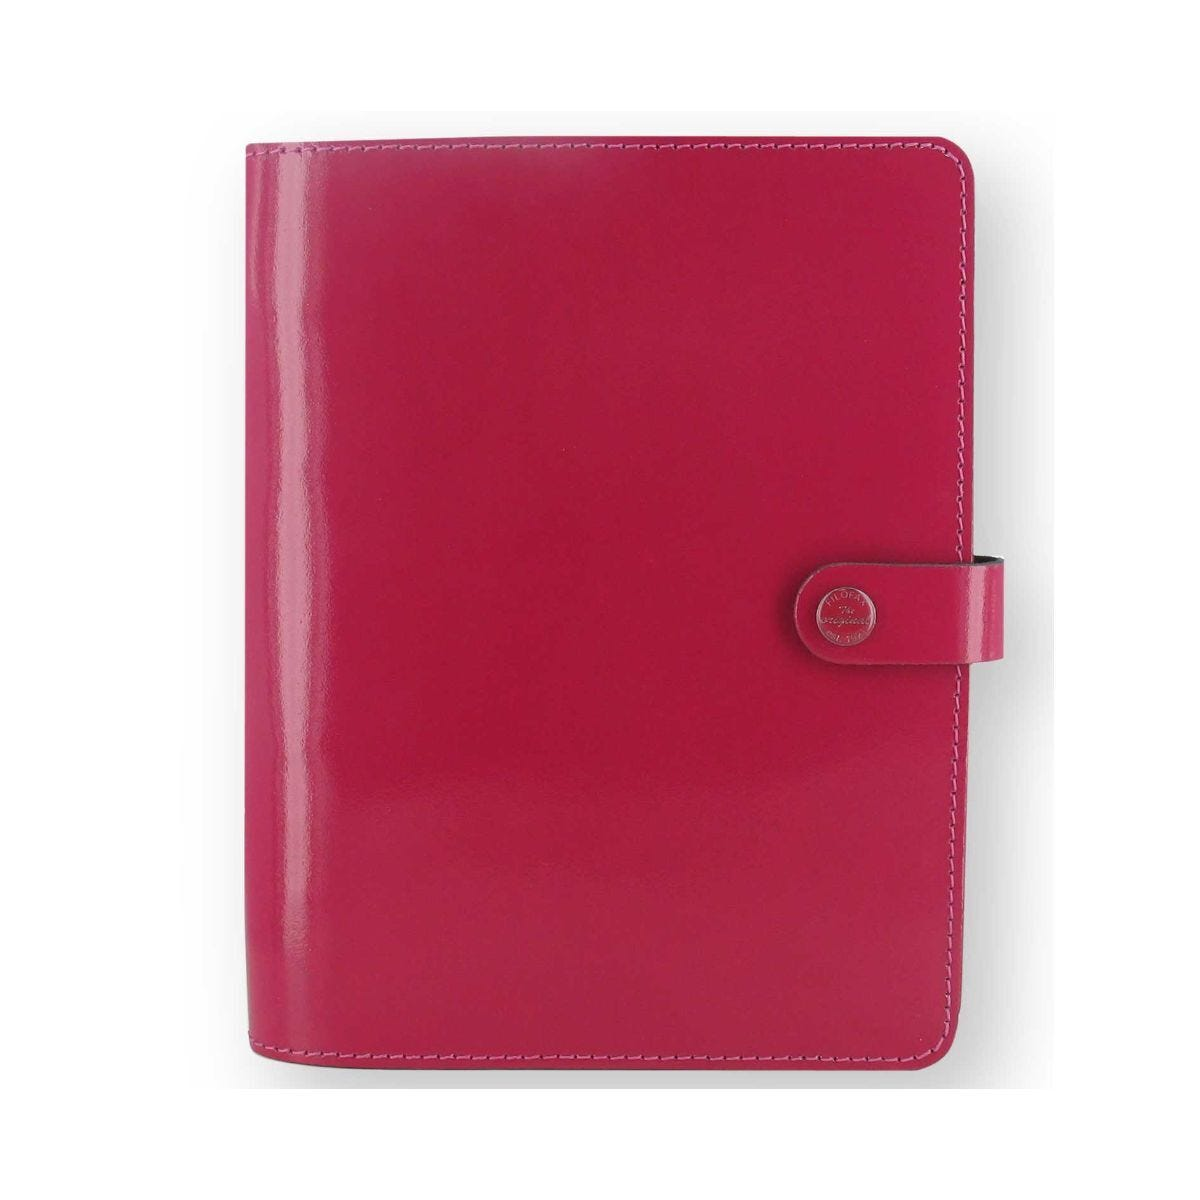 Filofax A5 The Original Patent Organiser